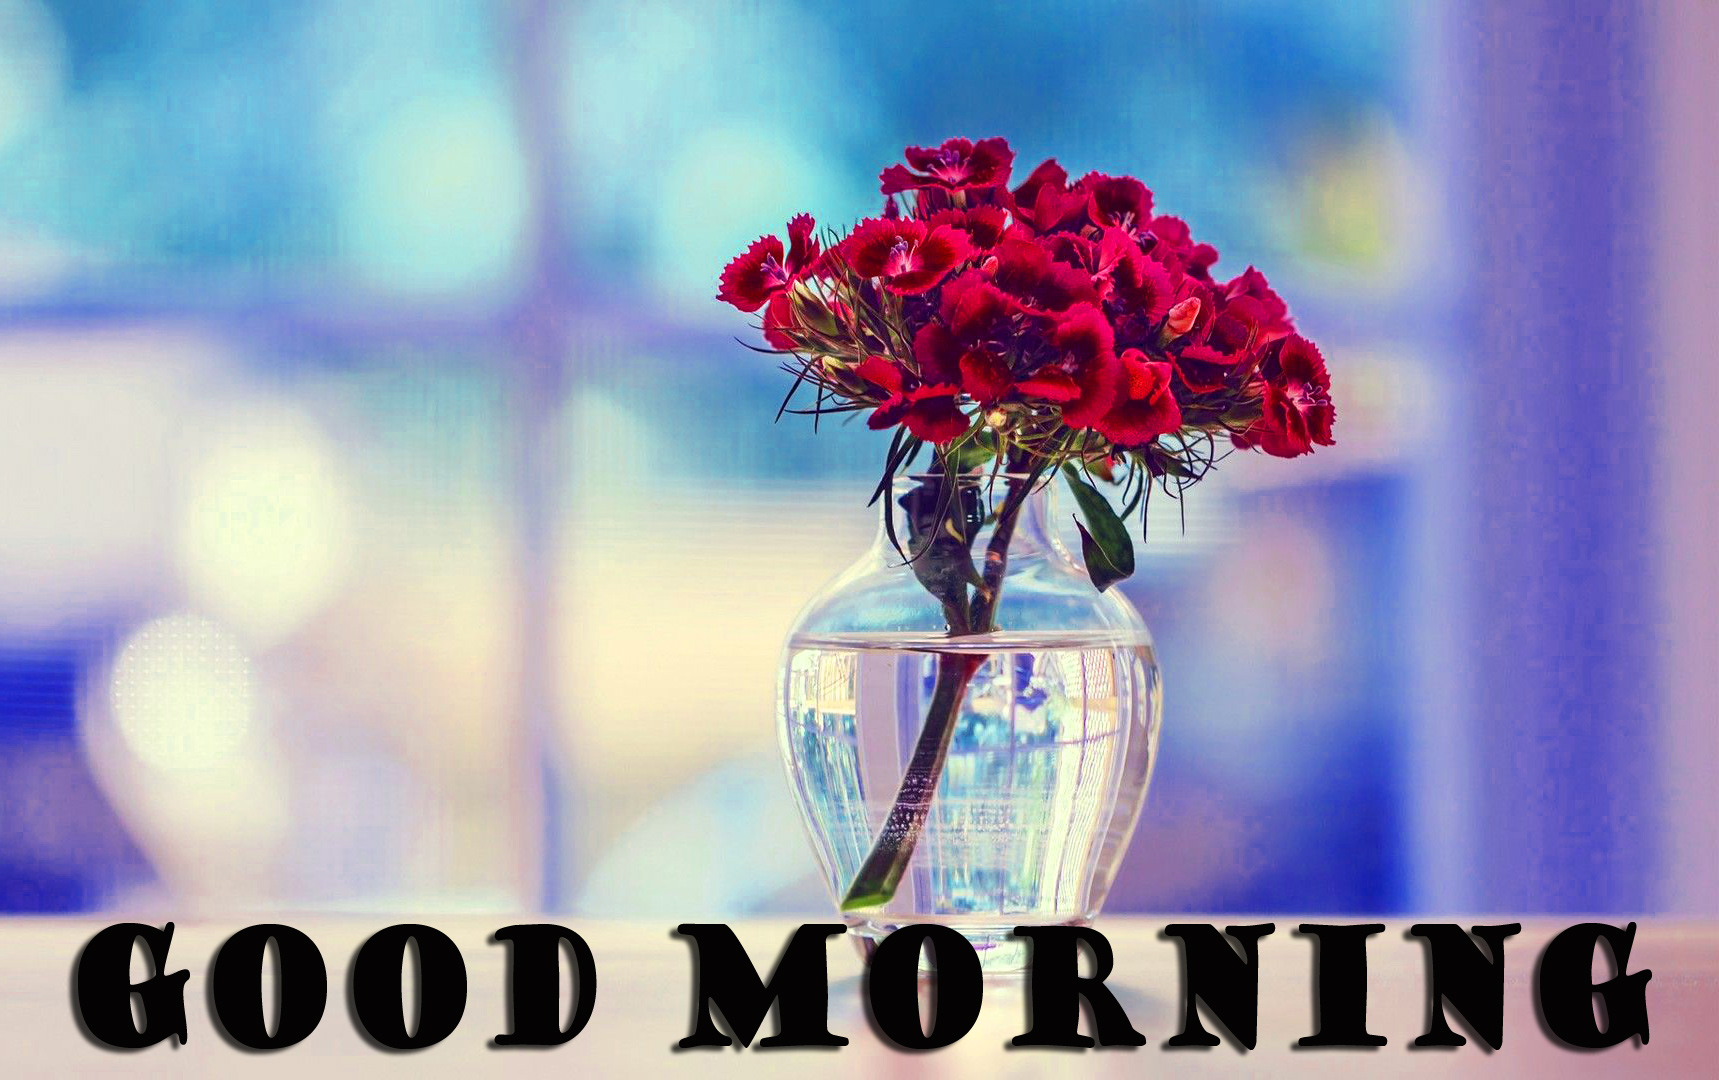 गुड मॉर्निंग New Wonderful Good Morning Wallpaper Pictures Images HD Download